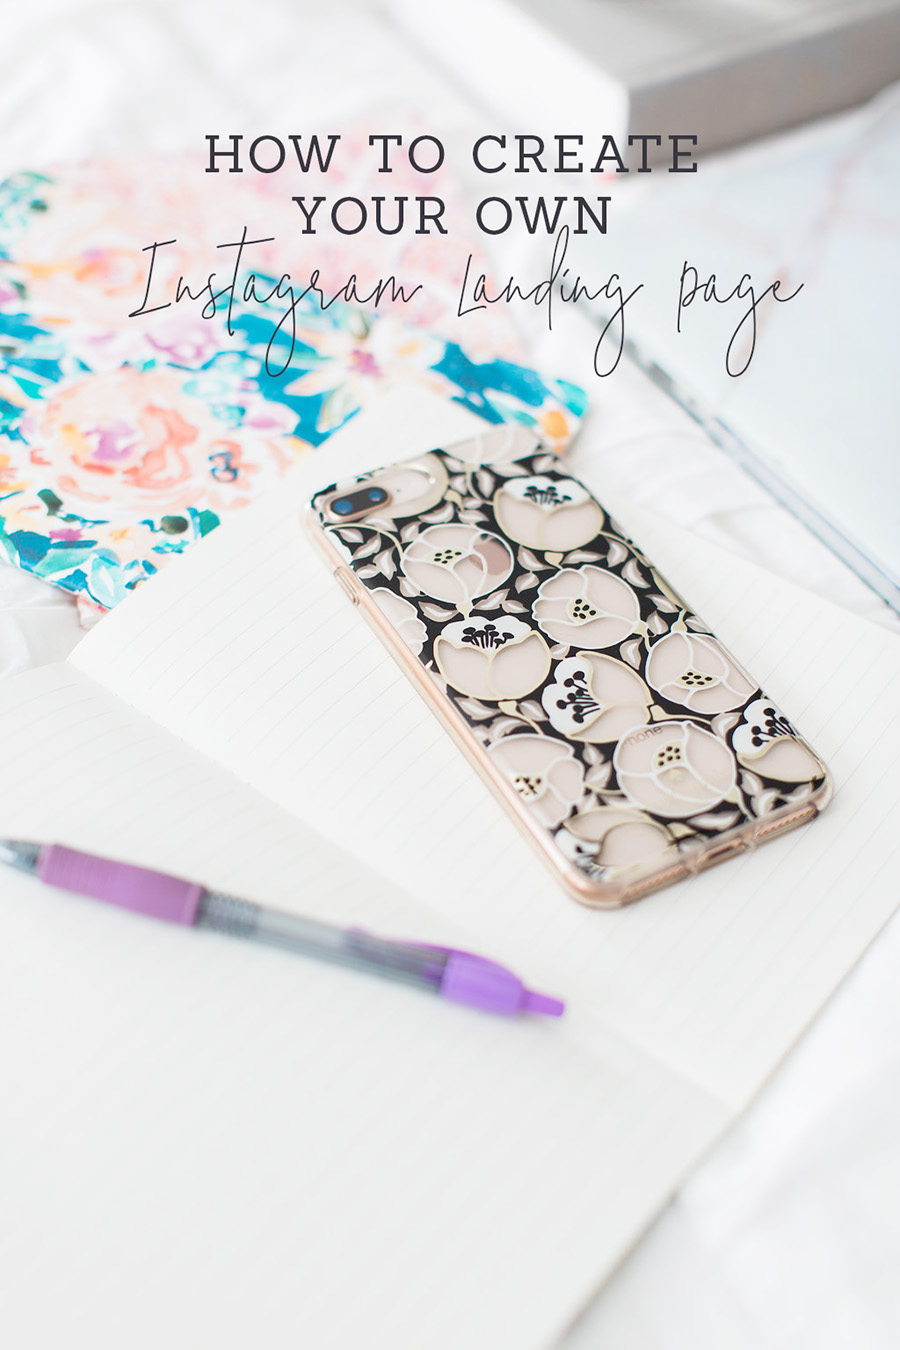 how to create instagram landing page